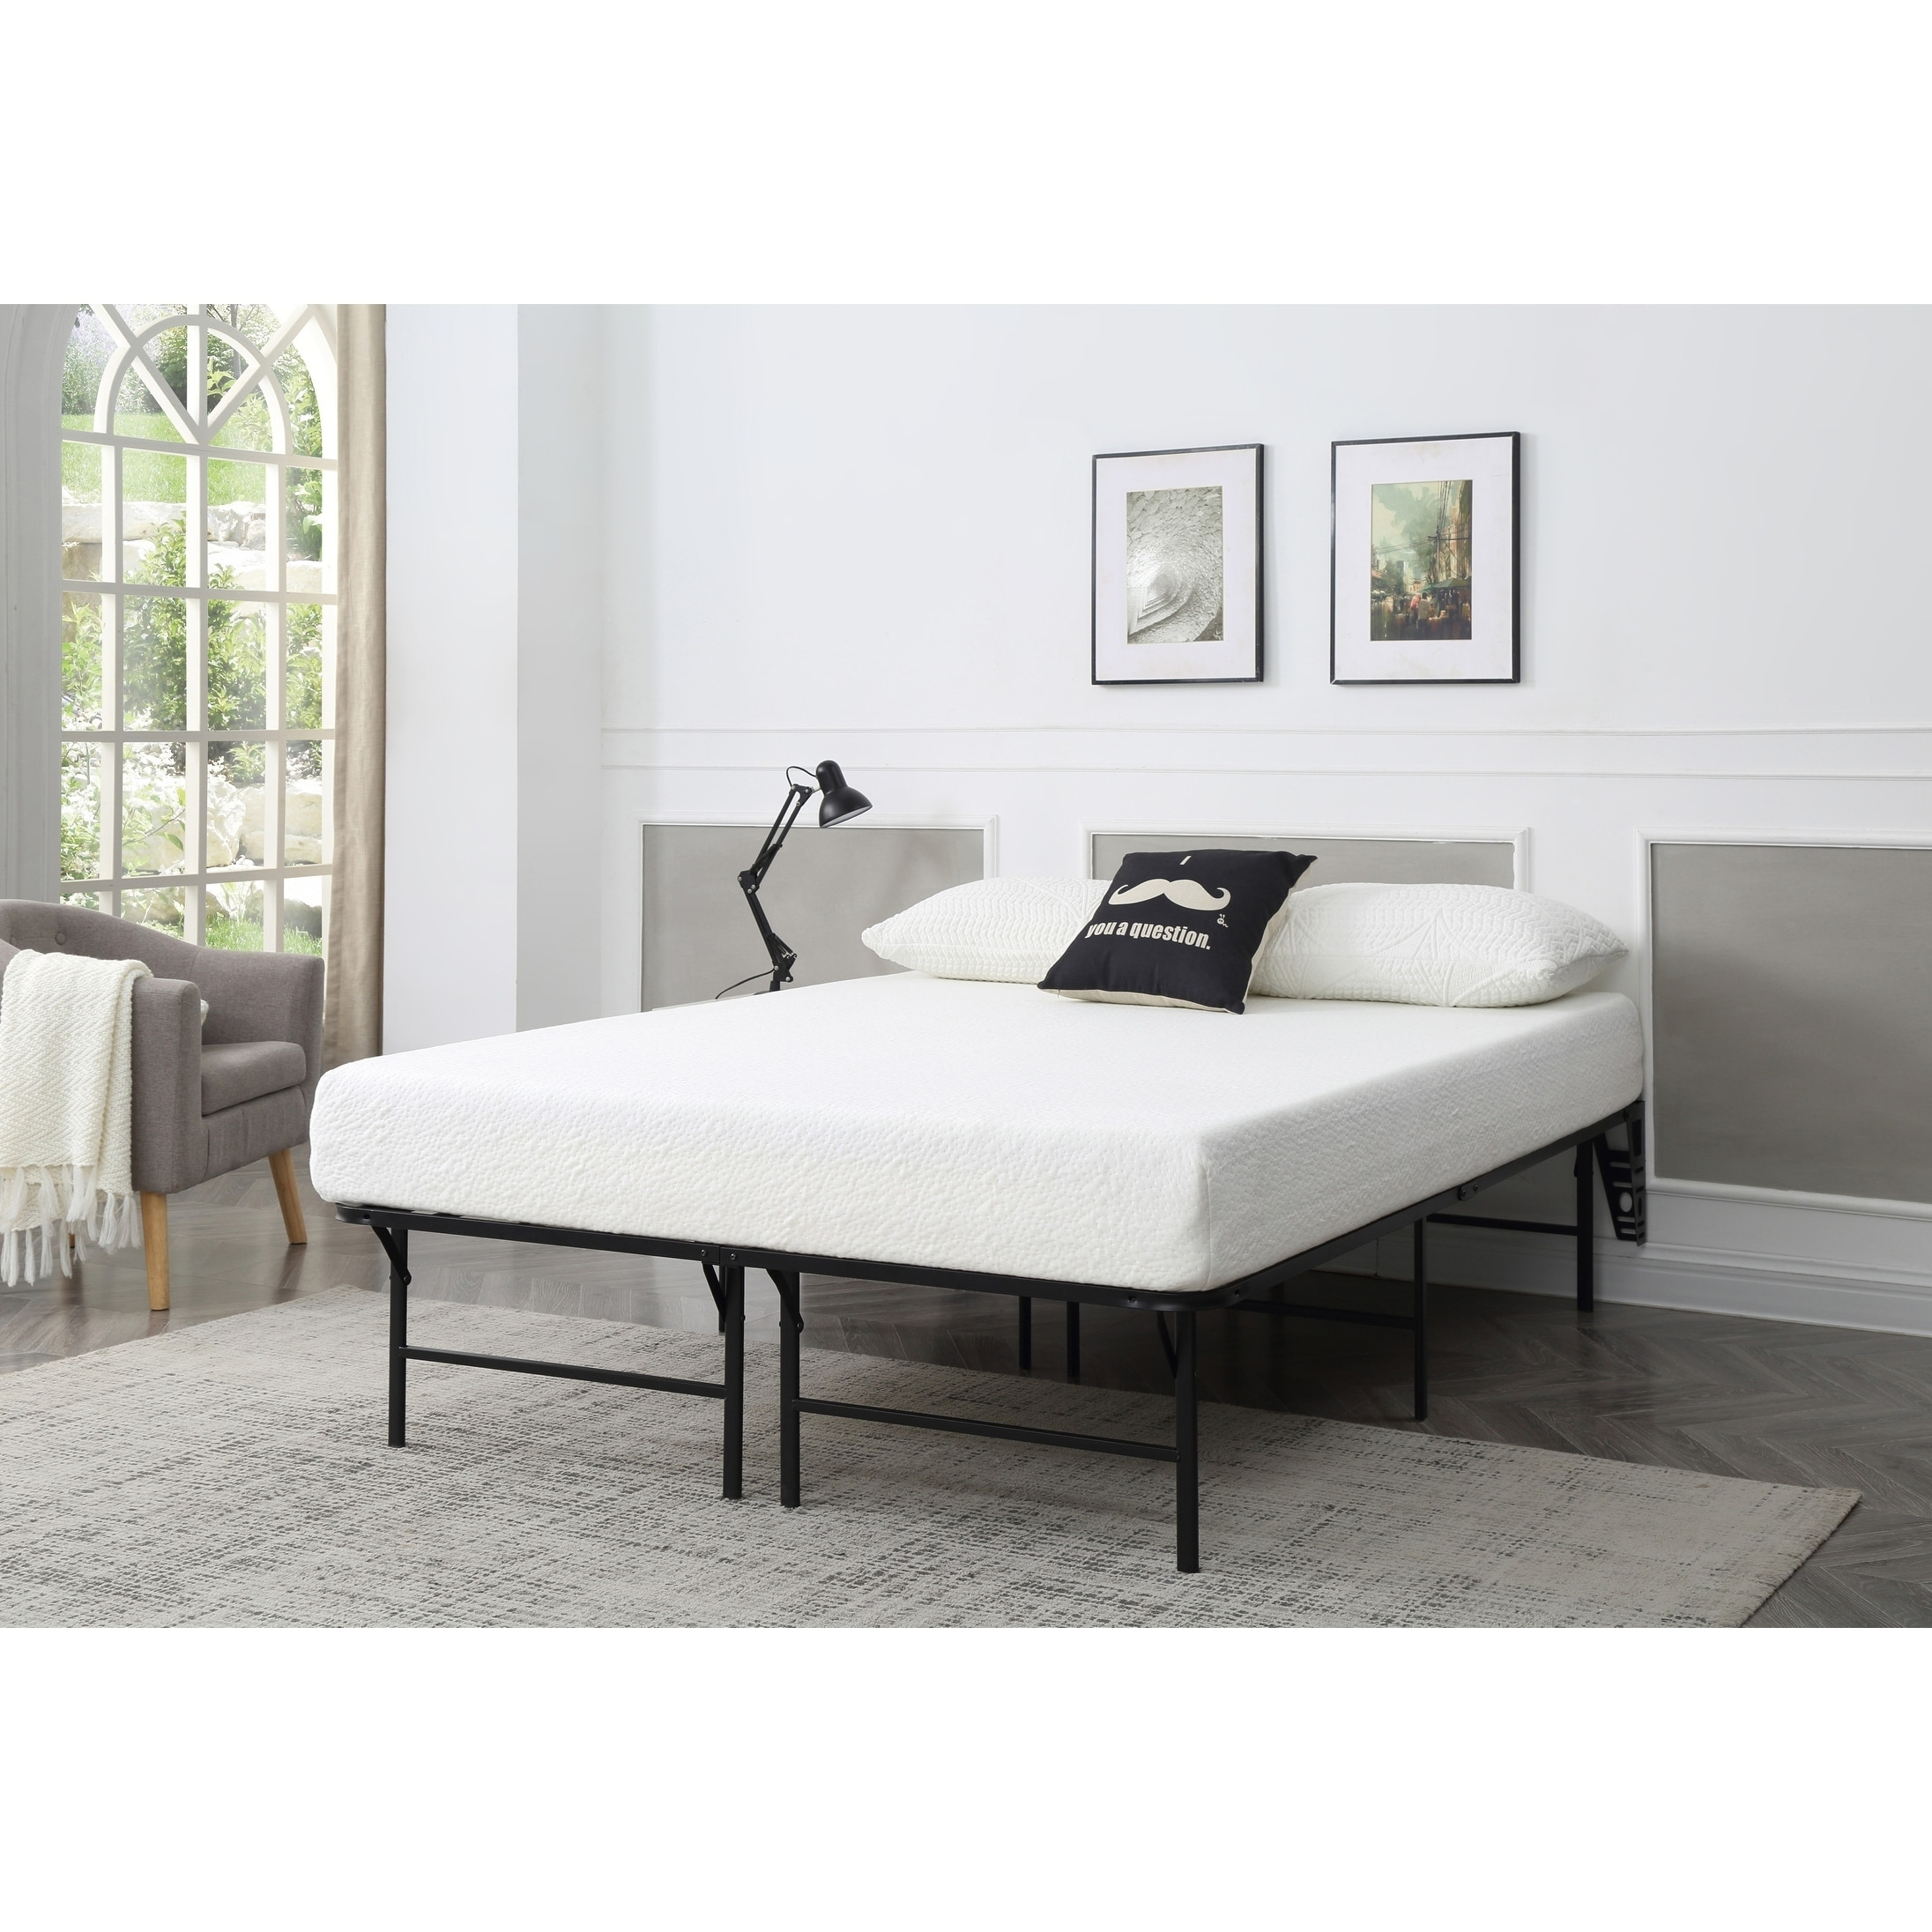 - Shop Optima Foldable Queen Platform Bed Frame - Overstock - 25446573